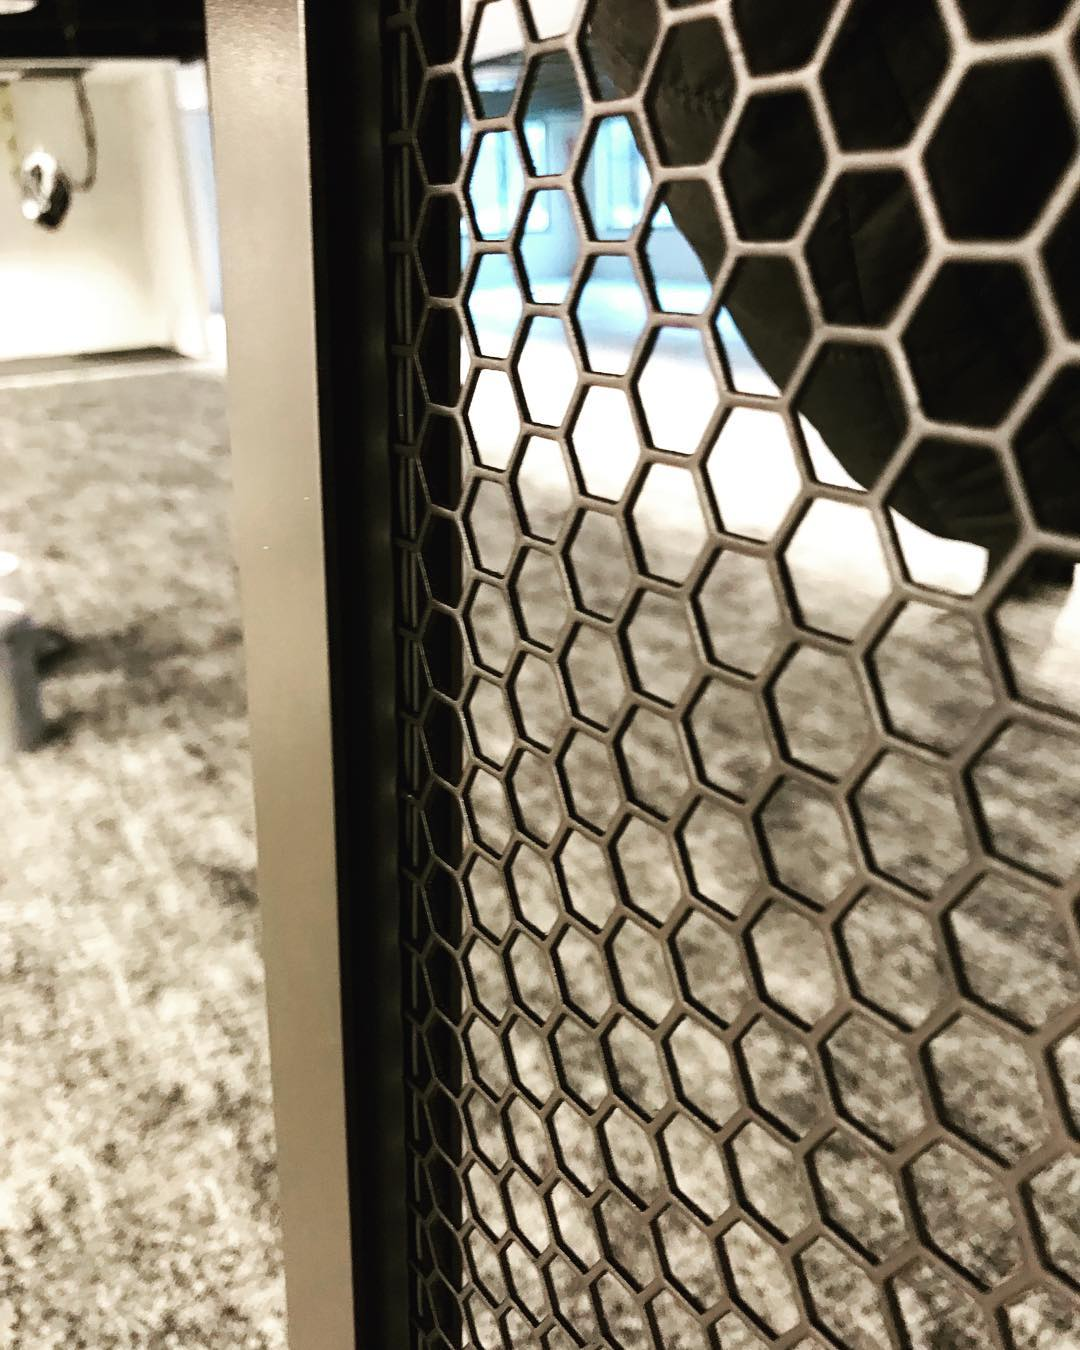 Feeling stoked on our custom hex mesh panel design 🏼 Stay tuned for where these beauties will be installed! #acquilanolesliedesign #customdesign #mcnicholsmetals #officedesign #welistenthencreate